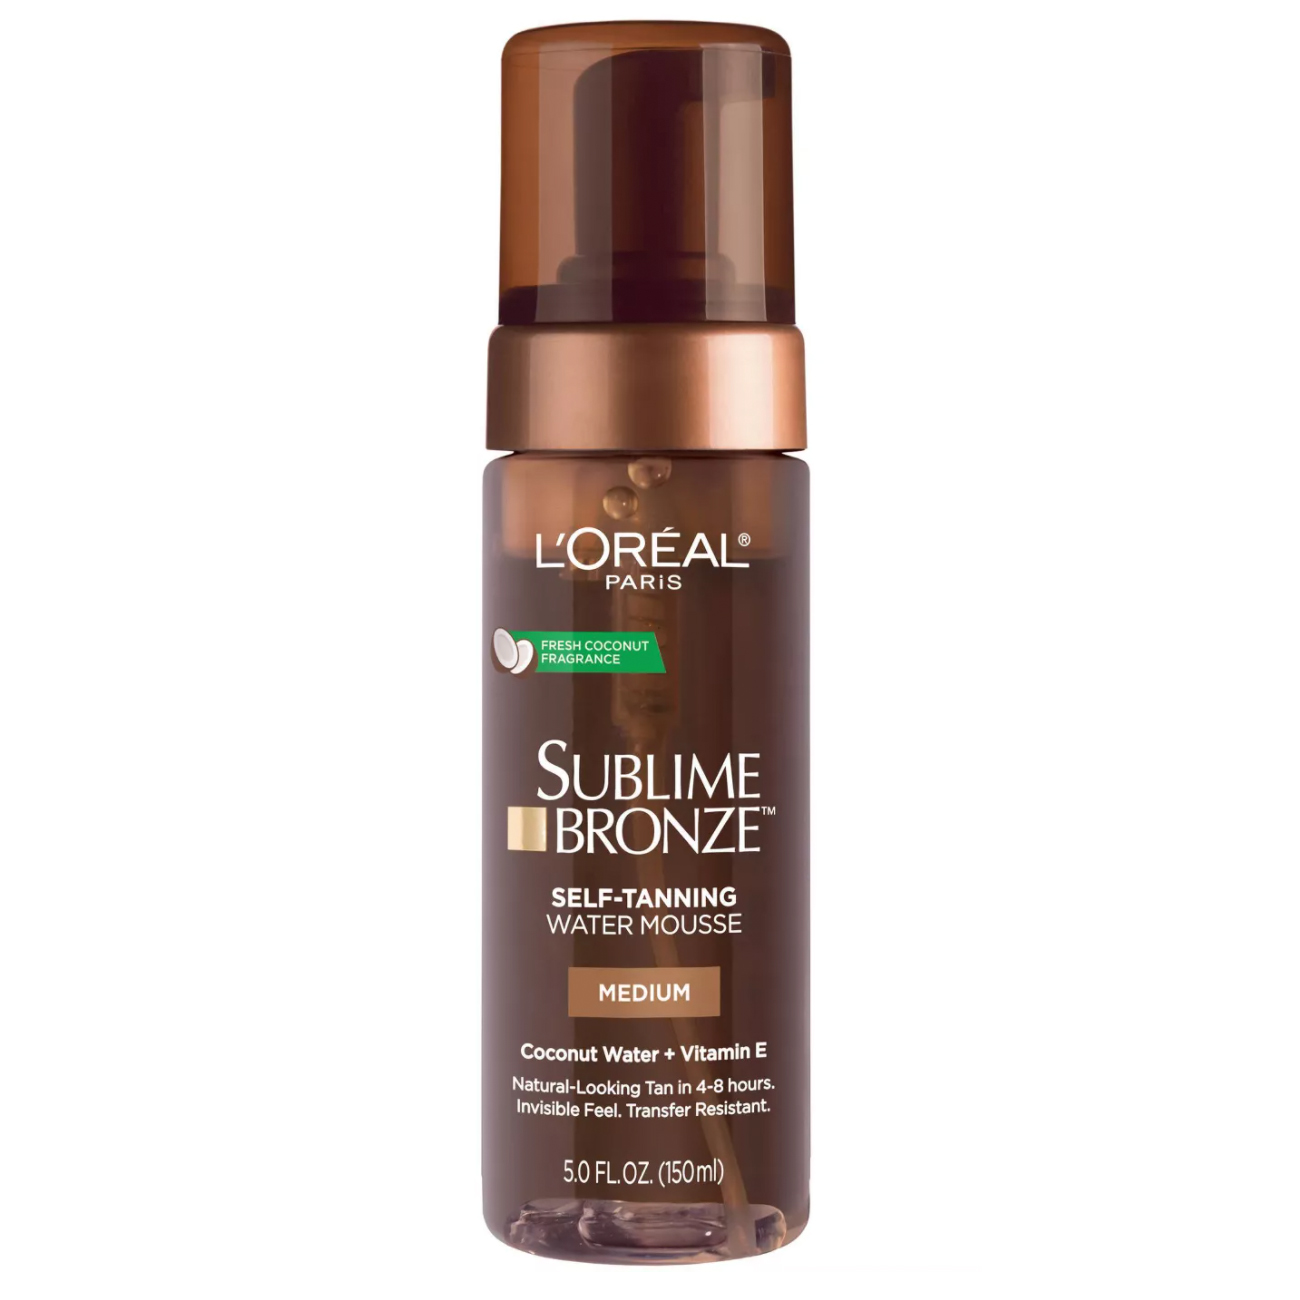 best self tanners body face drugstore affordable easy quick-dry l'oreal paris drugstore